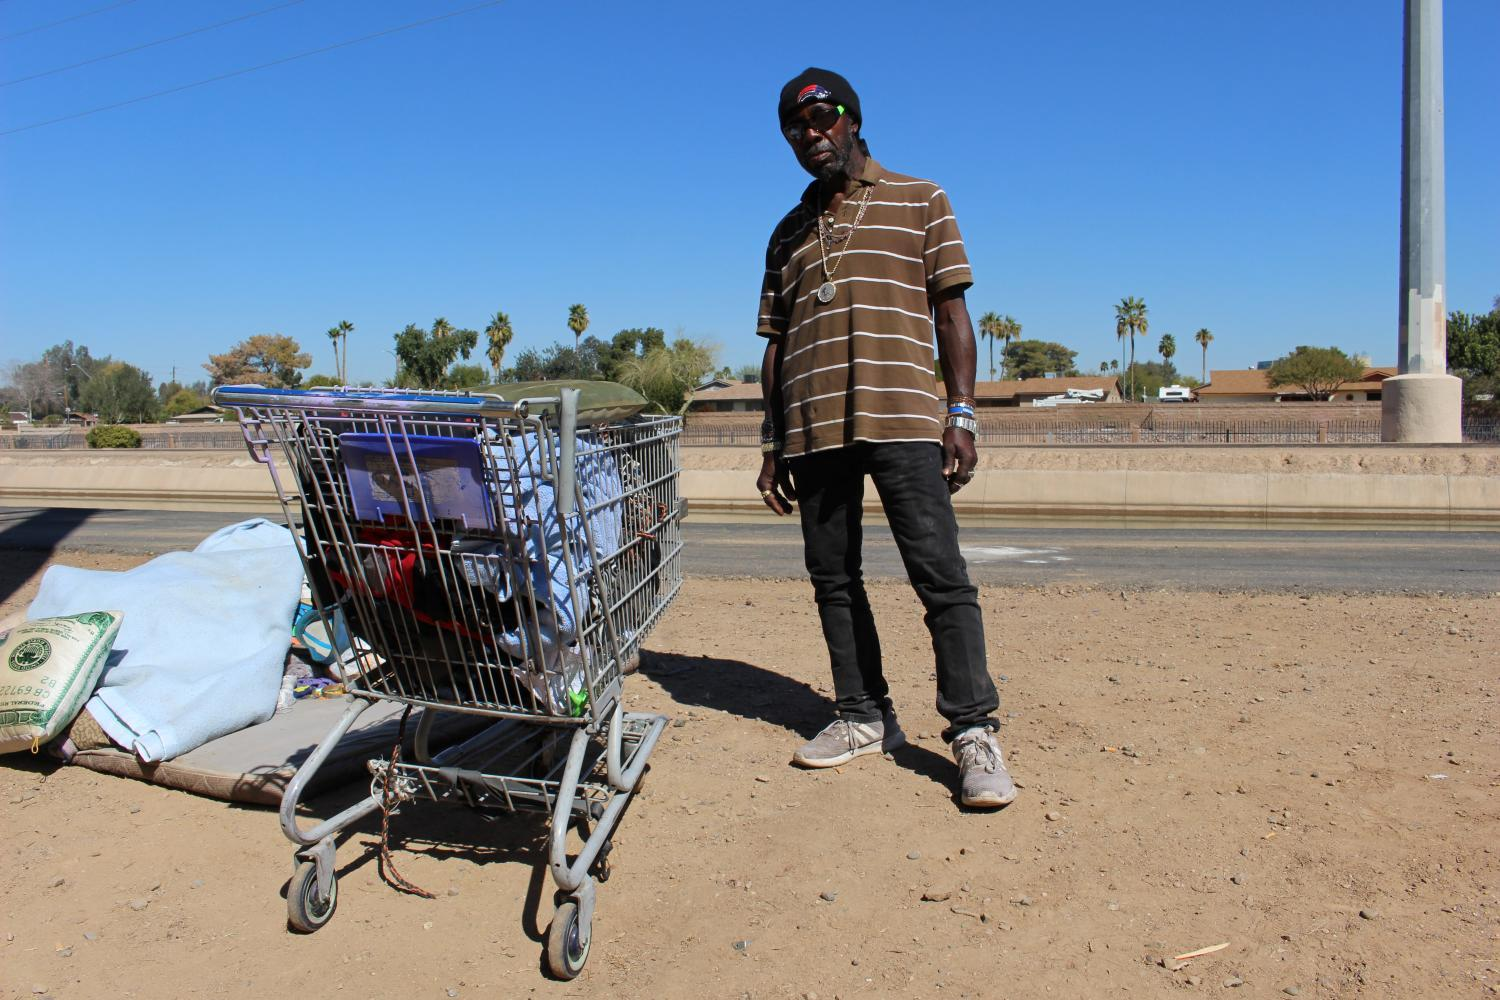 Phoenix resident Boom Boom, who is homeless, says he